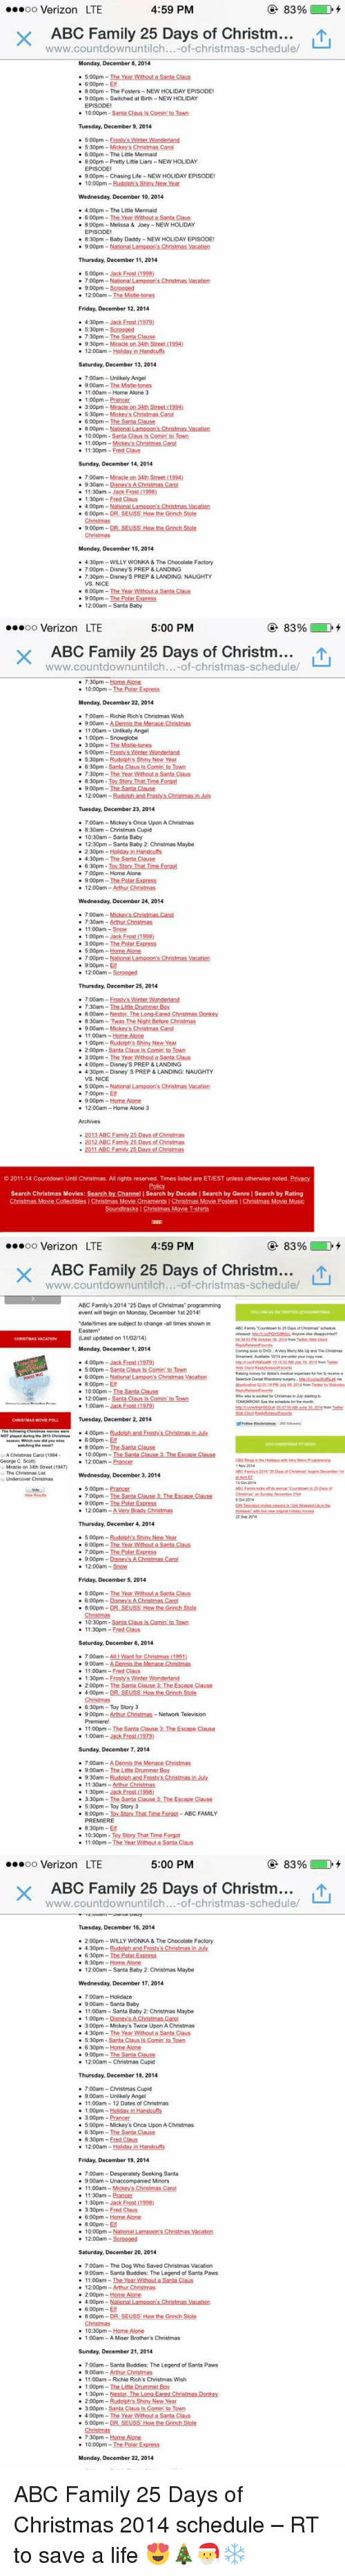 "Jack Frost: 83%  4:59 PM  ooooo Verizon LTE  X ABC Family 25 Days of Christma  www.countdownuntilch... of christmas-schedule/  Monday, December 8, 2014  500pm -The Year With  600pm -Elf  800pm-The Fosters-NEW HOLIDAY EPISODE!  9:00pm Switched at Birth-NEW HOLIDAY  EPISODE  10:00pm Santa Claus is Comin' to Town  Tuesday, December 9, 2014  5:00pm -Frosty s Winter  Wonderland  5:30pm-Mickey's Christmas Carol  6:00pm-The Little Mermaid  800pm-Pretty Little Liars NEW HOLIDAY  EPISODE  900pm Chasing Life -NEW HOLIDAY EPISODE!  10:00pm  Wednesday, December 10, 2014  400pm-The Little Mermaid  6:00pm The Year Without a Santa Claus  8:00pm -Melissa & Joey-NEW HOLIDAY  EPISODE!  8:30pm-Baby Daddy-NEWHOLIDAY EPISODE!  Thursday, December 11, 2014  5.00pm-Jack Frost (1998)  7:00pm -National Lampoon's Christmas Vacation  2:00am -The Mi  Friday, December 12, 2014  4:30pm Jack  Frost (1979)  5.30pm Scrooged  7:30pm The Santa Clause  9:30pm Mira  on 34th Street 11994)  12:00am Holiday in Handcuffs  Saturday, December 13, 2014  700am-Unlikely Angel  9:00am The Mistle-tones  11:00am Home Alone 3  1100pm Prancer  3:00pm Miracle on 34th Streetu994)  5:30pm-Mickey's Christmas Carol  6:00pm The Santa Clause  8200pm National Lampoons Christmas Vacation  10:00pm Santa Claus ls Comin' to Town  11:00pm Mickey s Christmas Carol  30pm  Sunday, December 14, 2014  7:00am-Miracle on 34th Street 1994)  9:30am  Disney's A Christmas Carol  11:30am Jack Frost (1998)  1:30pm Fred Claus  4.00pm -Ni  6:00pm DR SEUSS How the Grinch Stole  Monday, December 15, 2014  4:30pm WILLY WONKA& The Chocolate Factory  7:00pm Disney's PREP & LANDING  7:30pm Disney S PREP & LANDING: NAUGHTY  VS. NICE  8:00pm The Year Without a Santa Claus  9200pm -The Polar Express  12:00am Santa Baby   83%  5:00 PM  ooooo Verizon LTE  X ABC Family 25 Days of Christma  www.countdownuntilch... of Christmas-schedule/  7:30pm Home Alone  10:00pm The Polar Express  Monday, December 22, 2014  7:00am Richie Rich's Christmas Wish  9:00am  11:00am Unlikely Angel  100pm Snowglobe  3:00pm -The Mistle-tones  500pm Erosty's Winter Wonderland  5:30pm-Rudolph's Shiny New Year  6:30pm Santa Claus Is Comin to Town  7:30pm-The Year Without a Santa Claus  8:30pm Toy Story That Time Forgot  12:00am  Rudolph and Frostys Christmas in uly  Tuesday, December 23, 2014  7:00am-Mickey's Once Upon A Christmas  8:30am Christmas Cupid  10:30am Santa Baby  12:30pm Santa Baby 2: Christmas Maybe  2:30pm Holiday in Handcuffs  4 30pm The Santa Clause.  6:30pm loy Story That Tume Forgot  700pm Home Alone  9:00pm The Polar Express  12:00am-Arthur Christmas  Wednesday, December 24, 2014  7:00am Mickey's Christmas Carol  7.30am  11:00am Snow  1100pm Jack Frost (1998)  3:00pm The Polar Express  5200pm Home Alone  700pm National Li  n's Christmas Vacation  12:00am  Thursday, December 25, 2014  7:00am Frosty's Winter Wonderland  7:30am -The Little Drummed Boy  8:00am-Nestor, The Long-Eared Christmas Donkey  8:30am Twas The Night Before Christmas  900am Mickey's Christmas Carol  11:00am  Home Alone  1:00pm Rudolph's Shiny New Year  200pm Santa Claus Is Comin' to Town  300pm The Year Without a Santa Claus  4:00pm Disney S PREP & LANDING  4:30pm Disney S PREP & LANDING: NAUGHTY  VS, NICE  500pm National Lampoon's Christmas Vacation  7.00pm Elf  9:00pm Home Alone  12:00am Home Alone 3  Archives  2013 ABC Family 25 Days of Christmas  2012 ABC Family 25 Days of Christmas  ABC Family 25 Days of Christm  2011-14 Countdown Until Christmas. All rights reserved. Times listed are ET/EST unless otherwise noted. Privacy  Search Christmas Movies: Search by Channel I Search by Decade l Search by Genre l Search by Rating  Christmas Movie Collectibles l Christmas Movie Omaments IChristmas Movie Posters l Christmas Movie Music  Soundtracks IChristmas Movie T-shirts   83%  4:59 PM  OO  Verizon LTE  X ABC Family 25 Days of Christm  of-christmas-schedule/  ABC Family's 2014 25Days of Christmas"" programming  event will begin on Monday, December 1st 2014!  *dateltimes are subject to chang  -all times shown in  Eastern  Last updated on 11 M02/14)  Monday, December 1, 2014  t DVD. Avery Merry Mix Up and The Chnstmas  4:00pm Jack Frost (1979)  500pm S  anta Claus Is Comin' to Town  6:00pm -National Lampon's Christmas Vacation  8200pm Elf  10:00pm The Santa Clause  12:00am Santa Claus Is Comin' to Town  TOMORROW the schedulu the month  1100am Jack Frost 11979)  Tuesday, December 2, 2014  CHRISTMAS MOVIE POLL  lowing Chri  4:00pm Rud  NOT played during  6:00pm Elf  watching the  800pm The Santa Clause  10:00pm Ih  Christmas Carol  George C. Scott  12:00am Prancer  Miracle on 34th Street (1947)  The Christmas List  Wednesday, December 3, 2014  Christma  2014  500pm Prancer  7 00pm The Santa Clause 3 The Escape Clause  9:00pm The Polar Express  12:00am -Avery Brady Christmas  22 Sep 201  Thursday, December 4, 2014  500pm Rudolph's Shiny New Year  6:00pm  Ihe Yea With  Santa Claus  700pm -The Polar Express  9:00pm Disneys A Christmas Carol  12:00am  Snow  Friday, December 5, 2014  5.00pm  6:00pm-Disney s A Christmas Carol  8:00pm  Chris  0:30pm  Santa Claus Is Comin lo Town  11:30pm Fred Claus  Saturday, December 6, 2014  7:00am -All I Want for Christmas (199  00am Fred Claus  1230pm Frosty's Winter Wonderland  2:00pm The Santa Clause 3 The Escape Clause  4:00pm  Christmas  6:30pm Toy Story 3  9:00pm Arthur Network Television  Premiere  11.00pm  The Santa Clause 3: The Escape Clause  1200am Jack Frost (1979)  Sunday, December 7, 2014  7 00am-ADennis the Menace Christmas  9:00am -The Little Drummer Boy  9:30am R  hristmas in J  11:30am Arthur Christmas  1:30pm Jack Frost (1998)  330pm -The Santa Clause 3: The Escape Clause  5:30pm -Toy Story 3  B00pm Toy Stony That Time Forgot  ABC FAMILY  PREMIERE  8:30pm Elf  10:30pm -Toy Story That Time Forgot  11:00pm  Year Without a Santa Claus   83%  5:00 PM  ooooo Verizon LTE  X ABC Family 25 Days of Christma  of-christmas-schedule/  Tuesday, December 16, 2014  200pm WILLY WONKA & The Chocolate Factory  4:30pm Rudolph and Frosty's Christmas in July  6:30pm -The Polar Express  8:30pm Home Alone  12:00am-Santa Baby 2: Christmas Maybe  Wednesday, December 17, 2014  7:00am Holidaze  9:00am-Santa Baby  11:00am Santa Baby 2: Christmas Maybe  1:00pm Disney s AChristmas Carol  3100pm Mickey s Twice Upon AChristmas  4.30pm -The Year Without a Santa Claus  5.30pm Santa Claus Is Comin' to Town  6:30pm Home Alone  9:00pm The Santa Clause  12:00am Christmas Cupid  Thursday, December 18, 2014  7:00am-Christmas Cupid  9100am Unlikely Angel  11:00am  2 Dates of Christmas  100pm Holiday in Handcuffs  3:00pm-Prancer  5:00pm Mickey's Once Upon A Christmas  6.30pm-The Santa Clause  830pm Fred Claus  12:00am-Hol  n Handcuffs  Friday, December 19, 2014  7:00am-Desperately seeking Santa  9200am-Unaccompanied Minors  11:00am-Mickey's Christmas Carol  30am-Prancer  1:30pm Jack Frost (1998)  3.30pm-Fred Claus  6300pm Home Alone  8:00pm  0:00pm-Na  12:00am Scrooged  Saturday, December 20, 2014  700am The Dog Who Saved Christmas Vacation  9:00am Santa Buddies: The Legend of Santa Paws  11:00am  12:00pm Arthur Christmas  2:00pm Home Alone.  4:00pm  6.00pm Elf  800pm-DR SEUSS How the Grinch Stole  10:30pm Home Alone  00am A Miser Brother's Christma  Sunday, December 21, 2014  7:00am Santa Buddies: The Legend of Santa Paws  9:00am Arthur Christmas  00am-Richie Rich's Christmas Wish  1:00pm The Little Drummer B  1:30pm  -Ear  2:00pm-Rudolph's Shiny New Year  3.00pm Santa Claus Is Comin' to Town  4:00pm The Year Without a Santa Claus  5.00pm  Christ  7:30pm Home Alone  0:00pm The Polar Express  Monday, December 22, 2014 ABC Family 25 Days of Christmas 2014 schedule – RT to save a life 😍🎄🎅❄️"